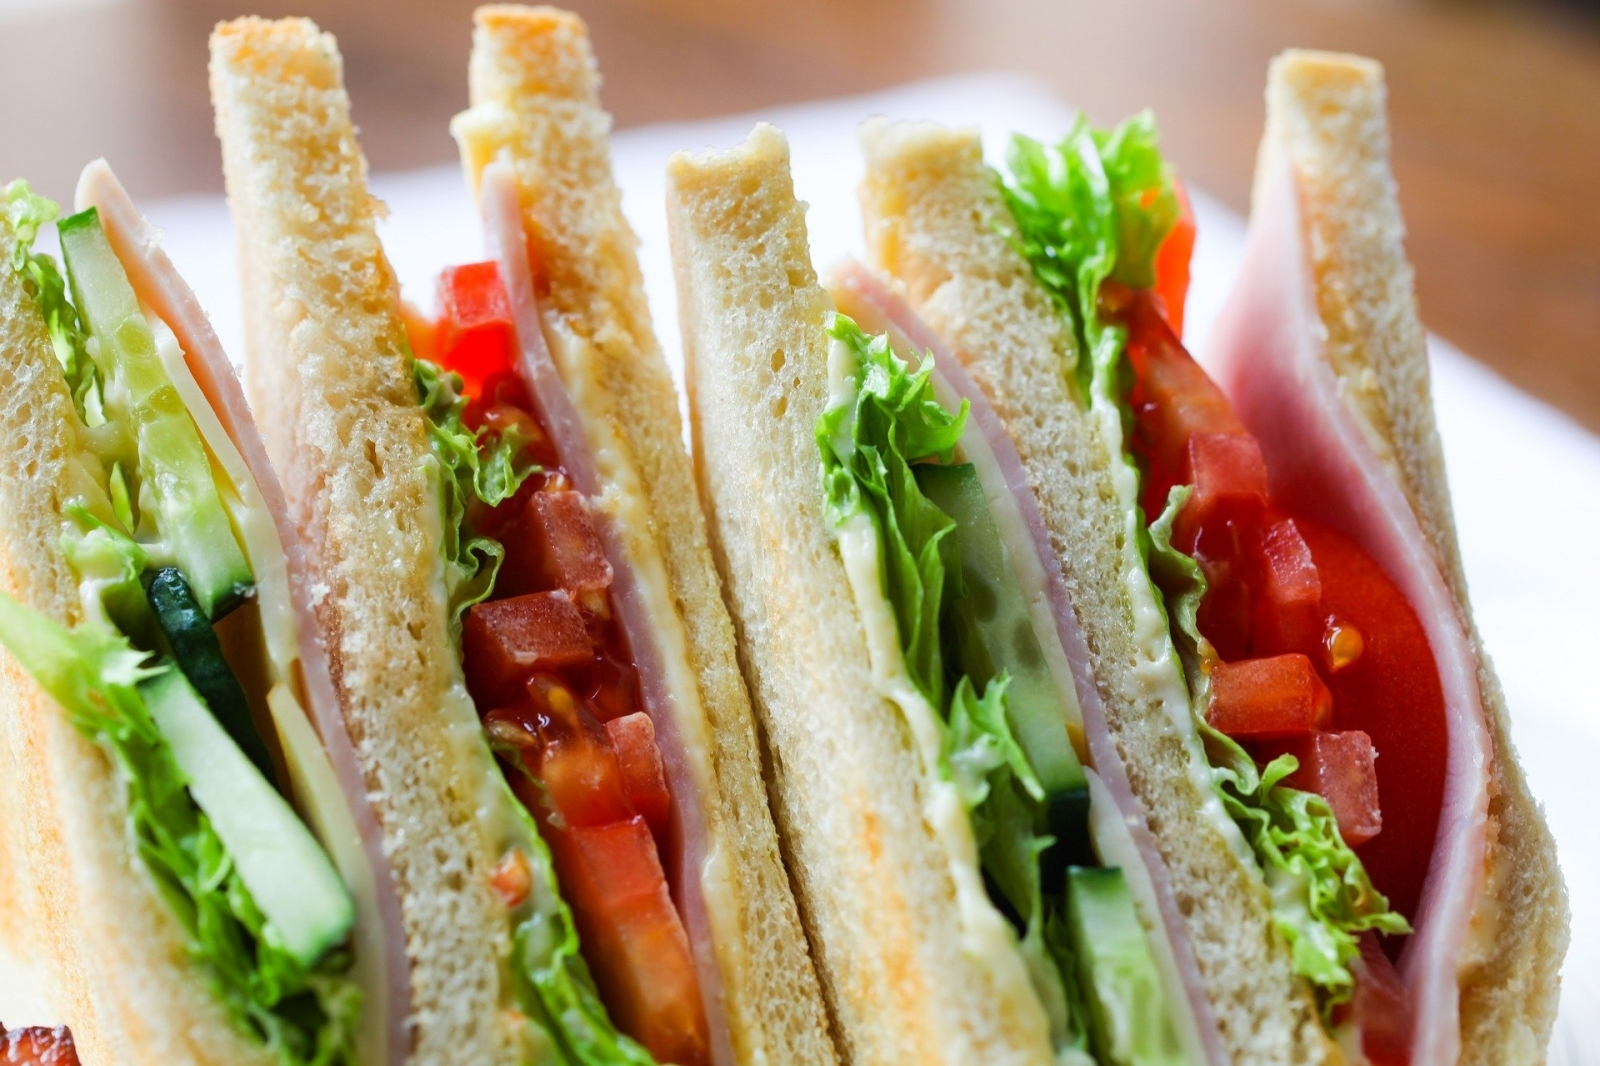 Annual sandwich consumption has 'same environmental impact as millions of cars'